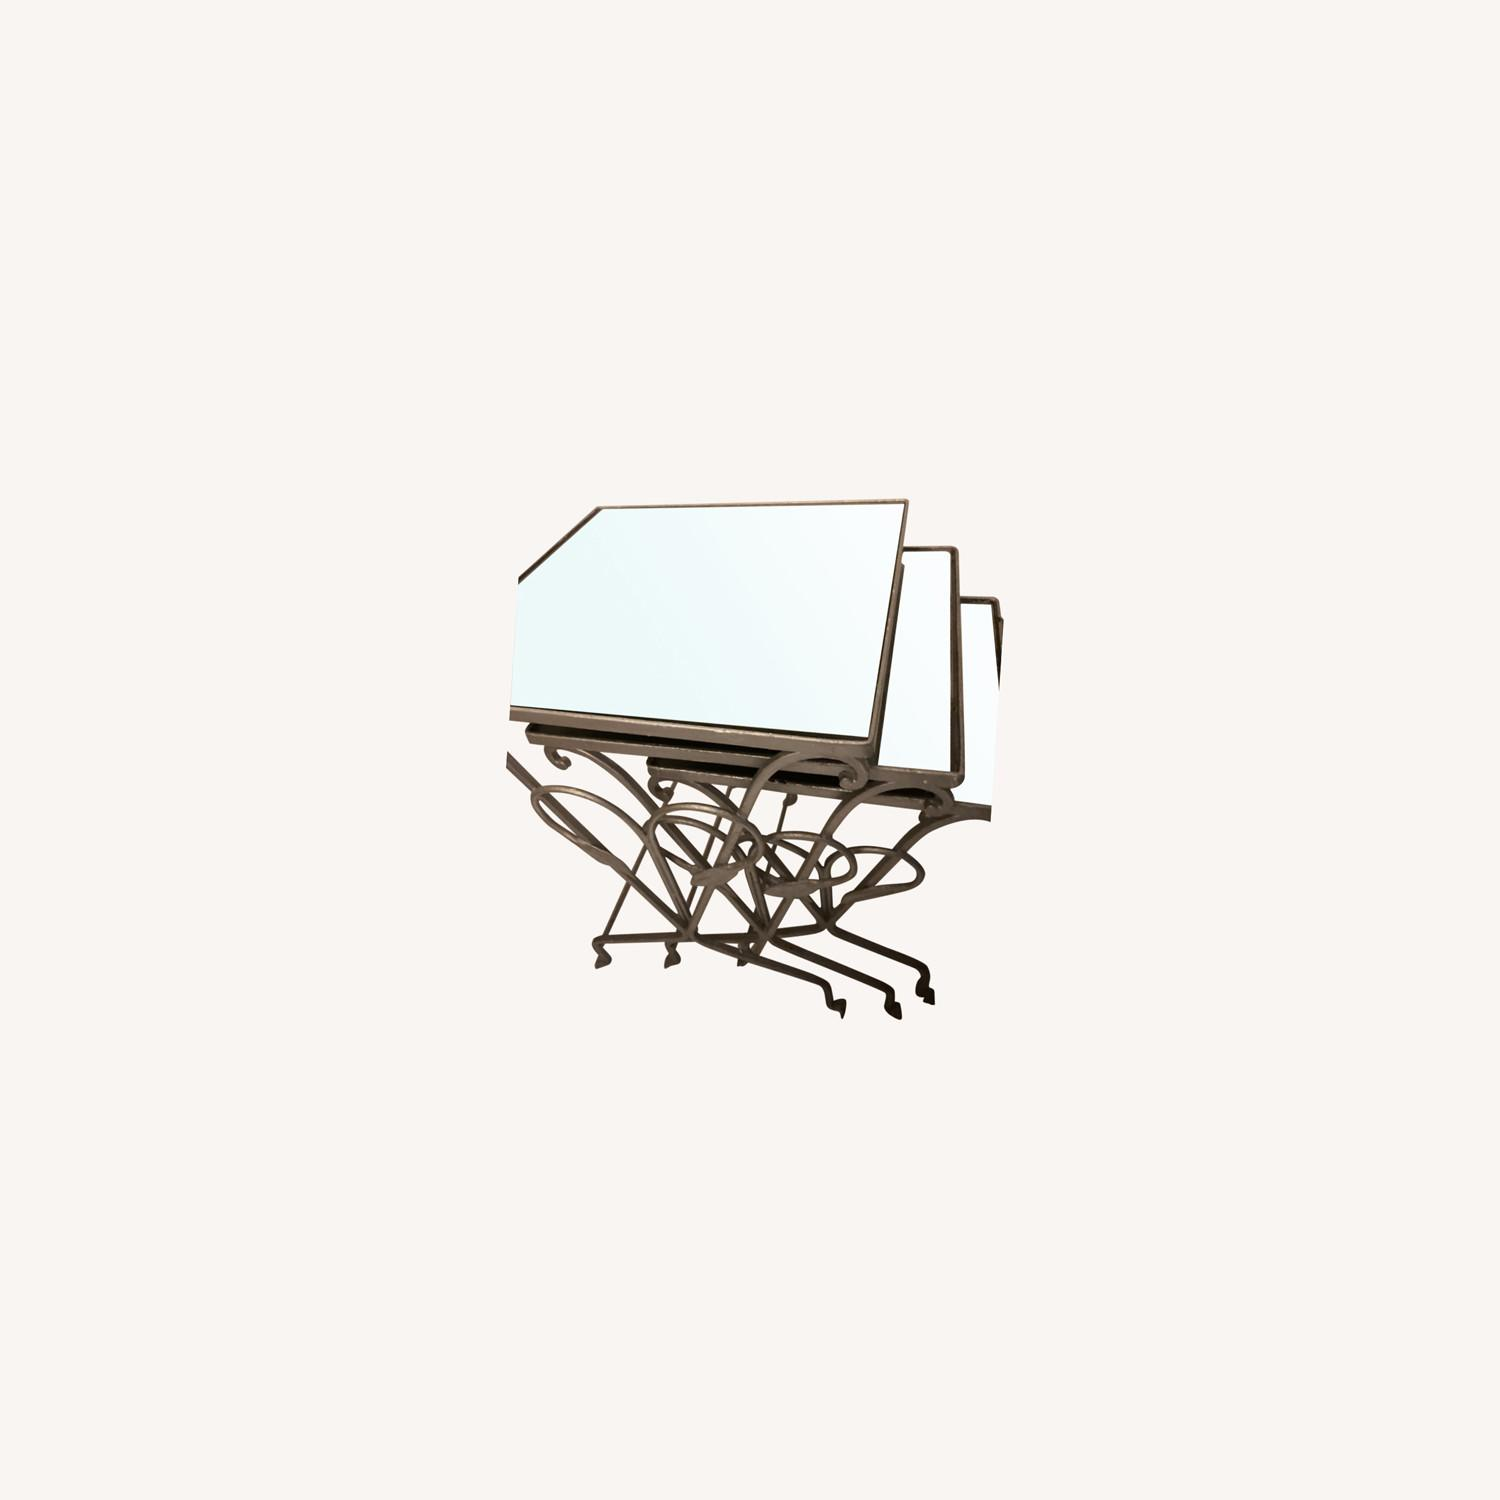 Antique Garden Tables with Mirrored Glass - image-0